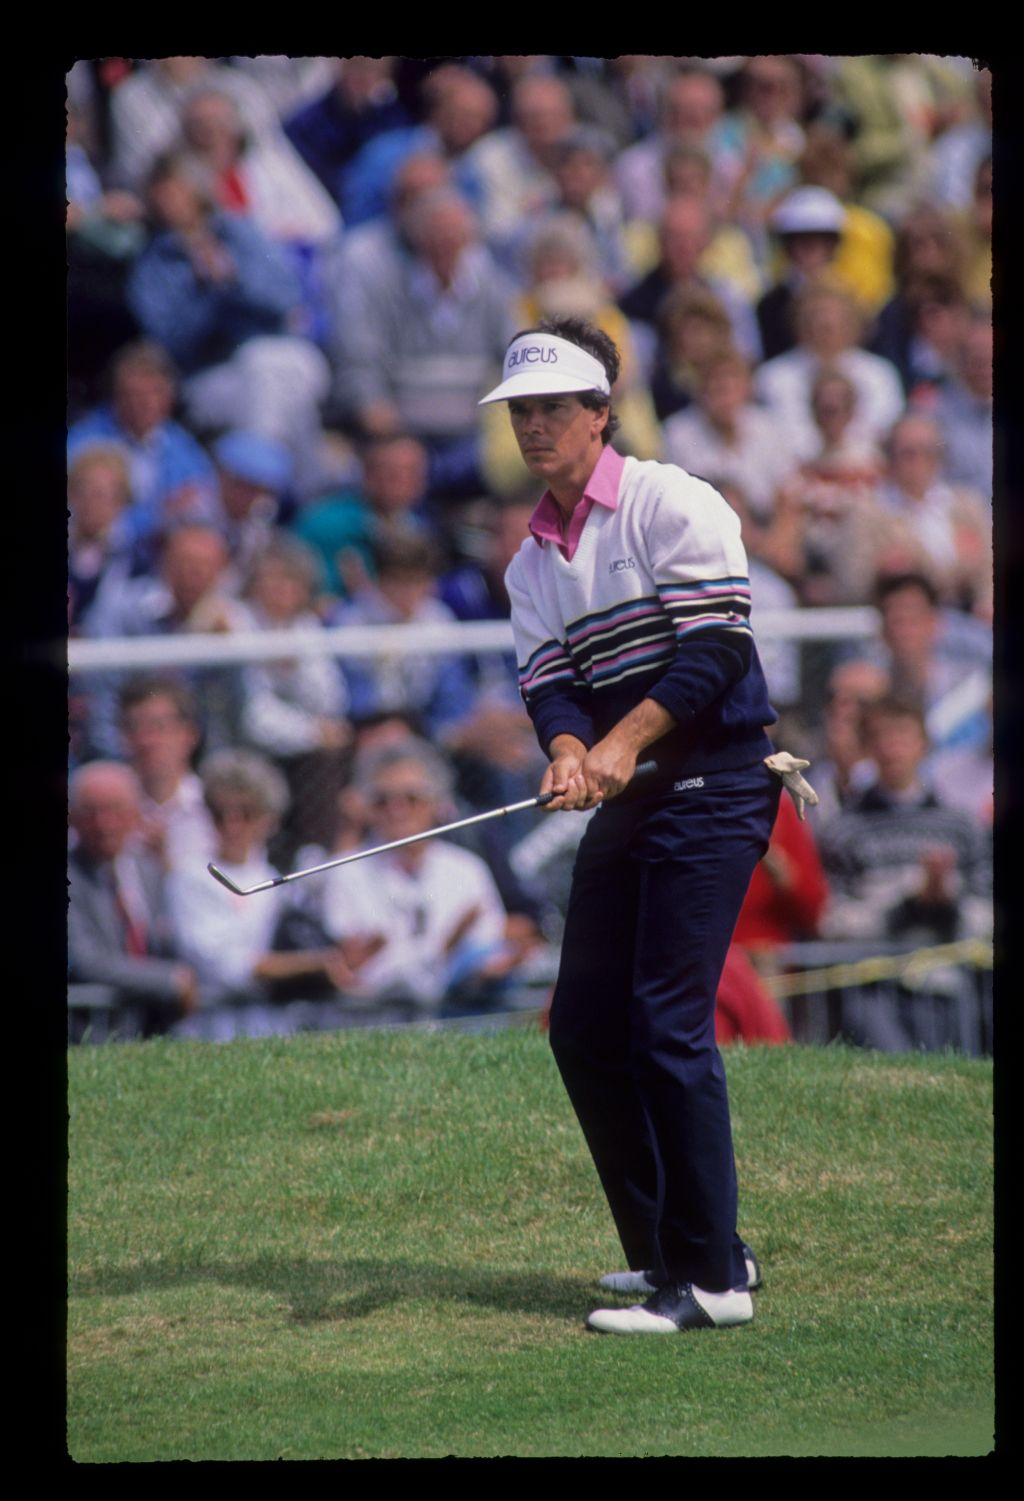 Larry Mize chipping from the semi rough during the 1988 Open Championship